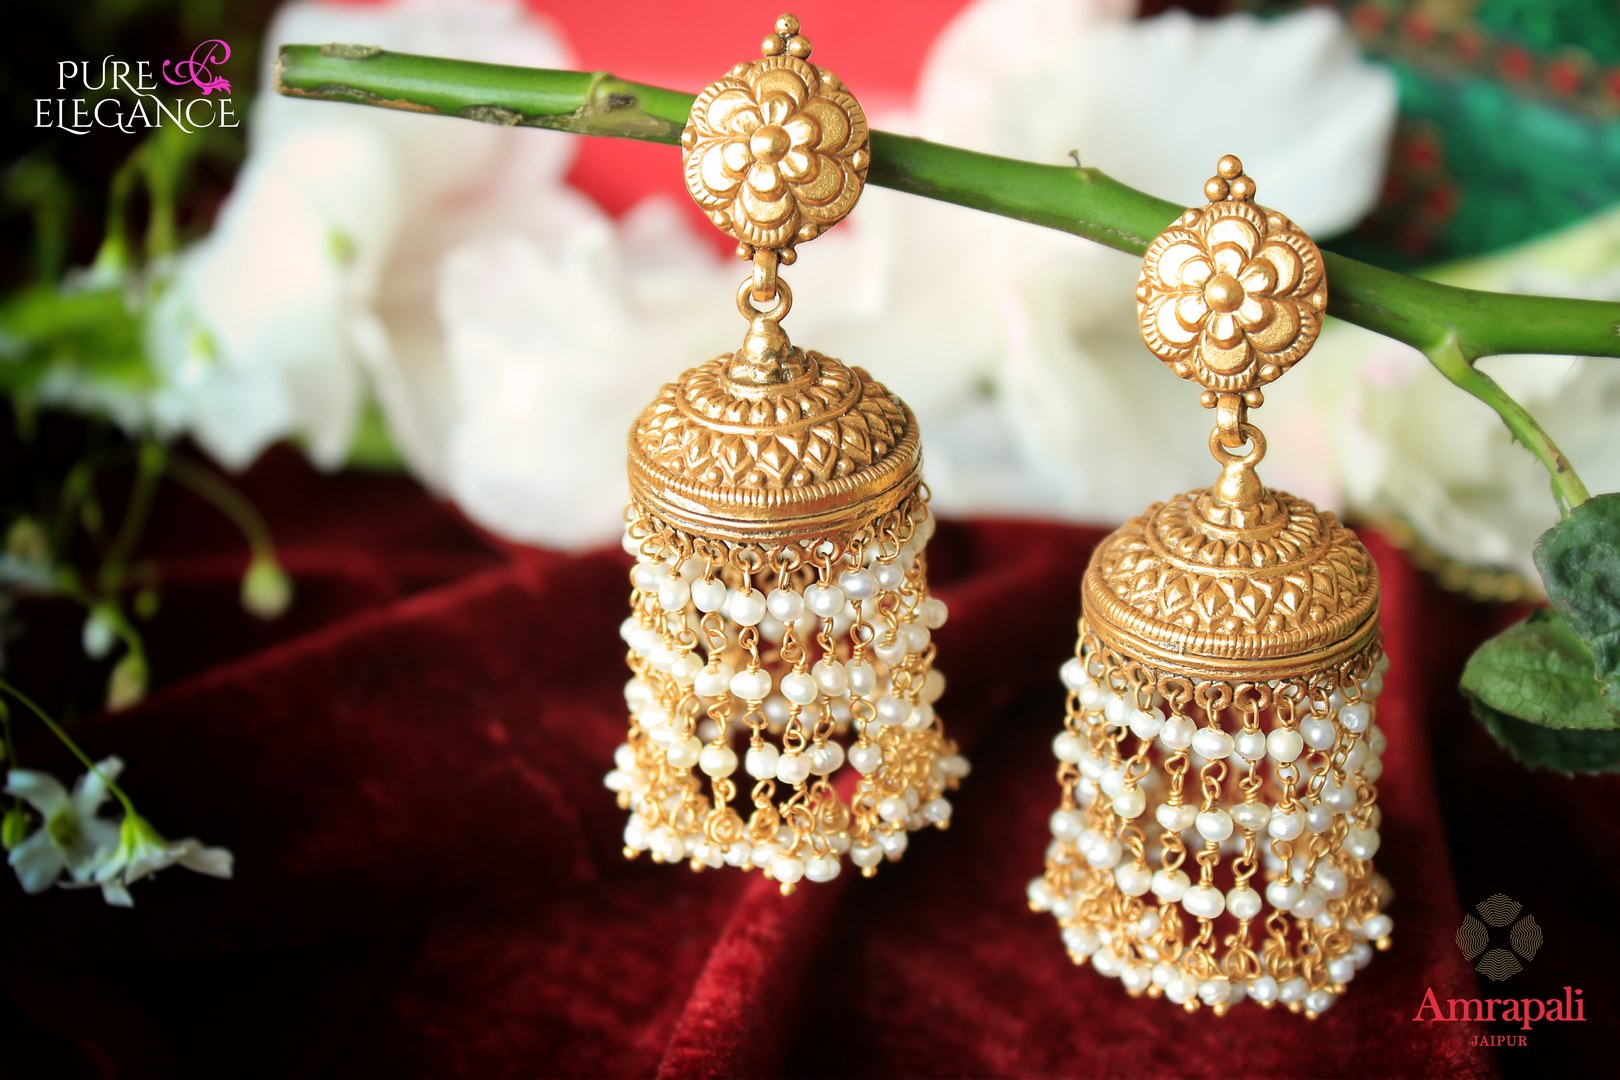 Buy ethnic silver gold plated earrings online in USA with pearl tassels. Add a unique touch to your Indian look at special occasions with these stunning earrings. Shop more such exquisite Amrapali jewelry in USA at Pure Elegance, you can visit our exclusive fashion store in USA or shop online.-flatlay